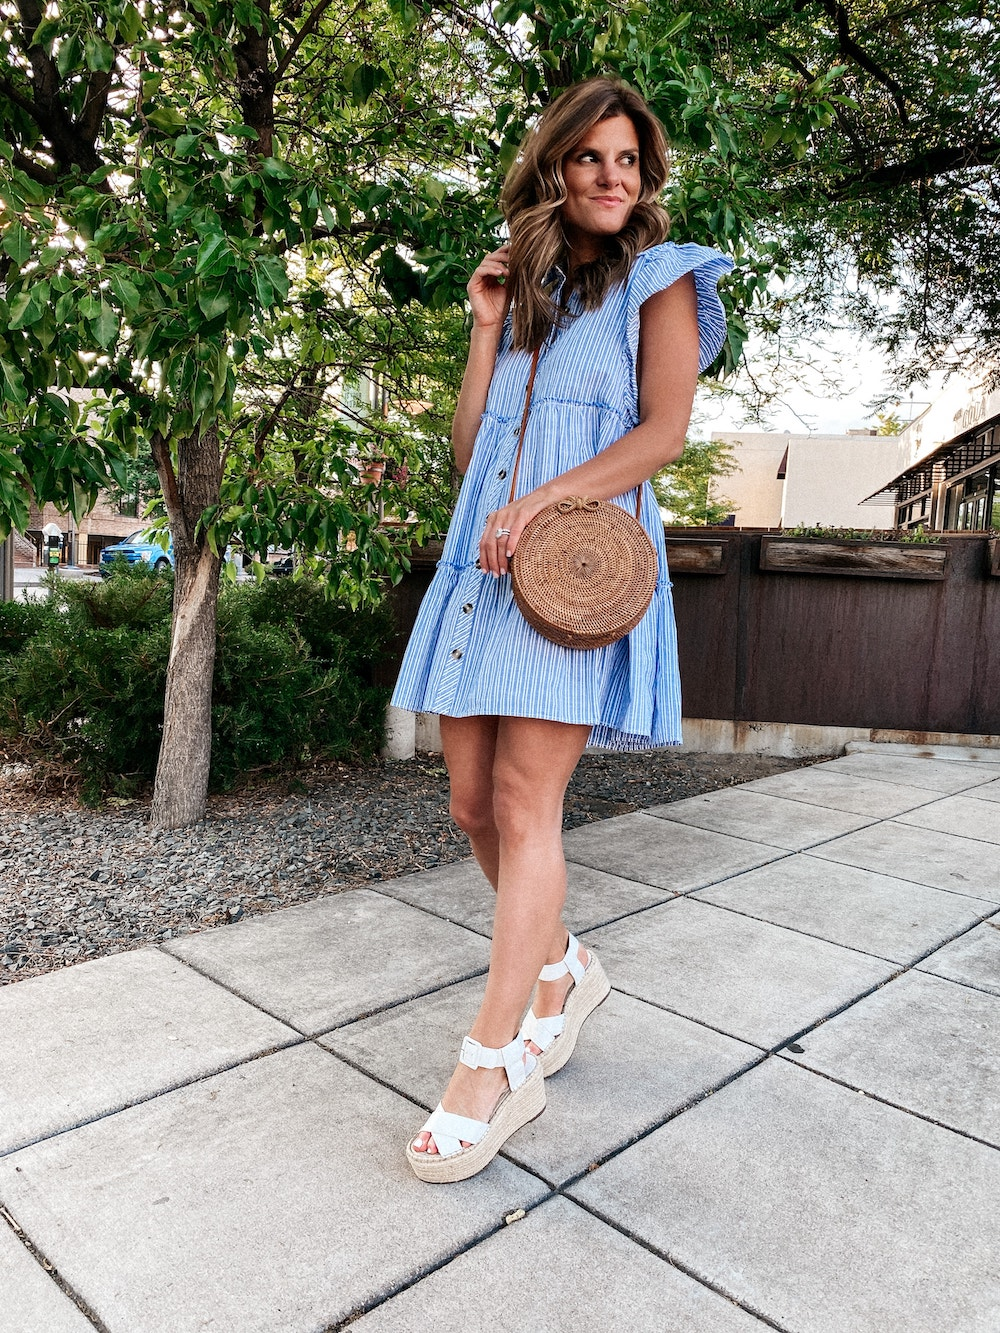 brighton butler wearing free people blue check swing dress with white platform sandals, fourth of July outfit idea